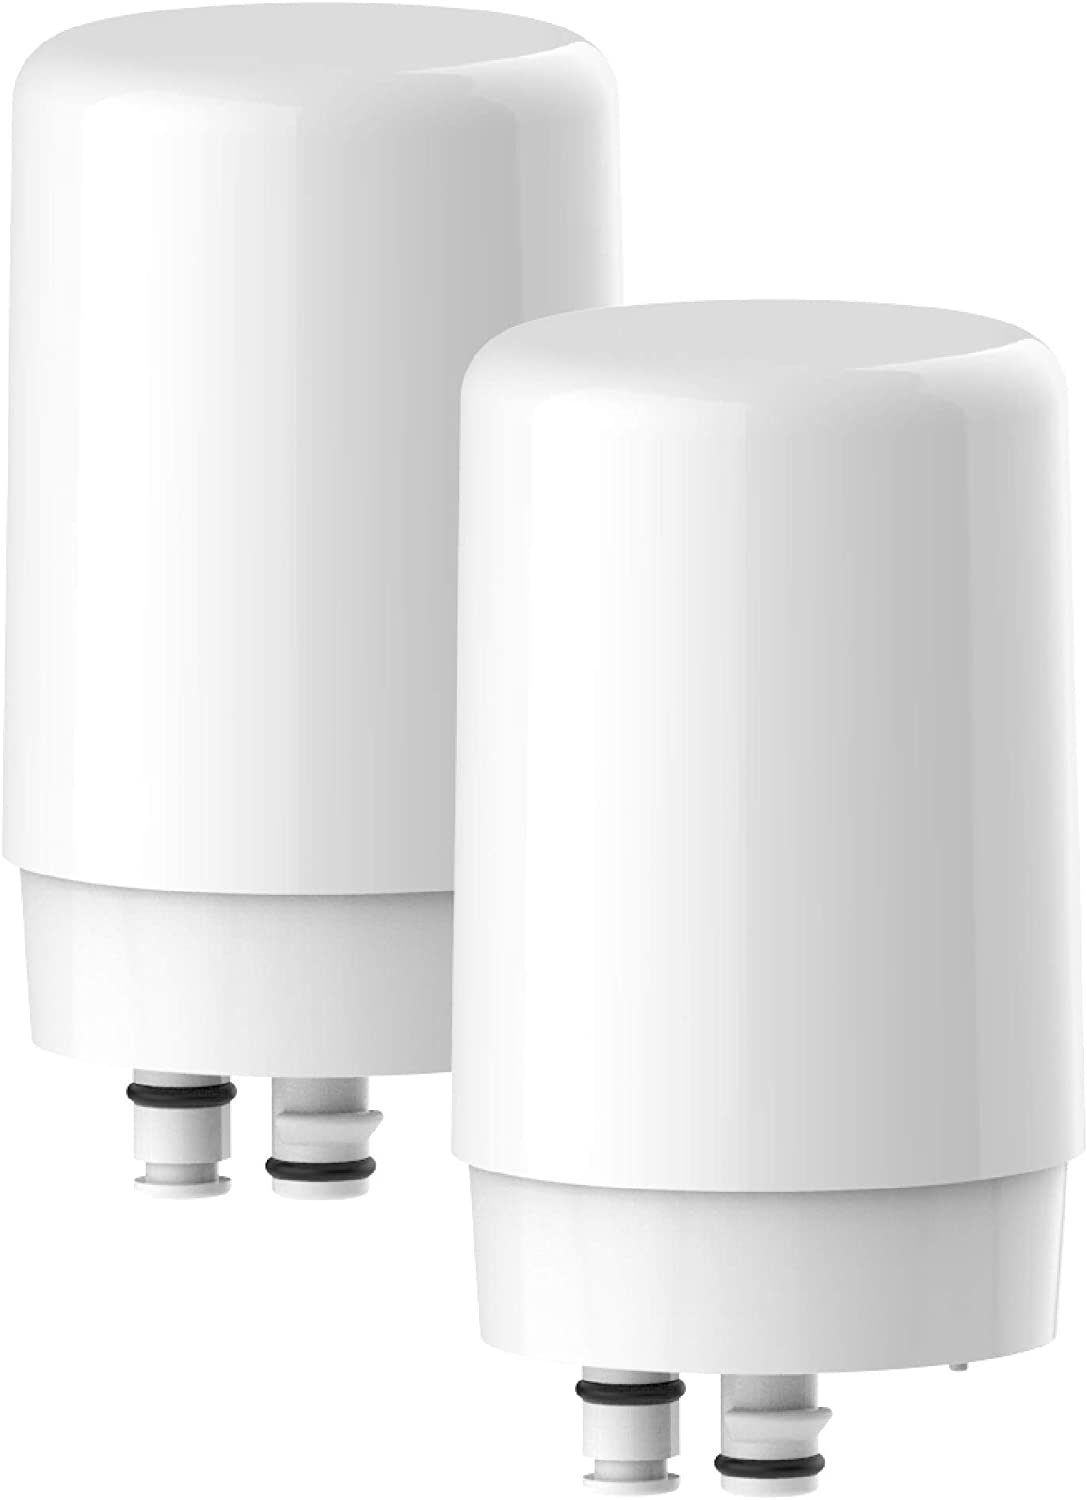 Compatible with Brita 36311 On Tap Water Filtration System Replacement Filters Pack of 2 Waterdrop Faucet Filter Cartridges